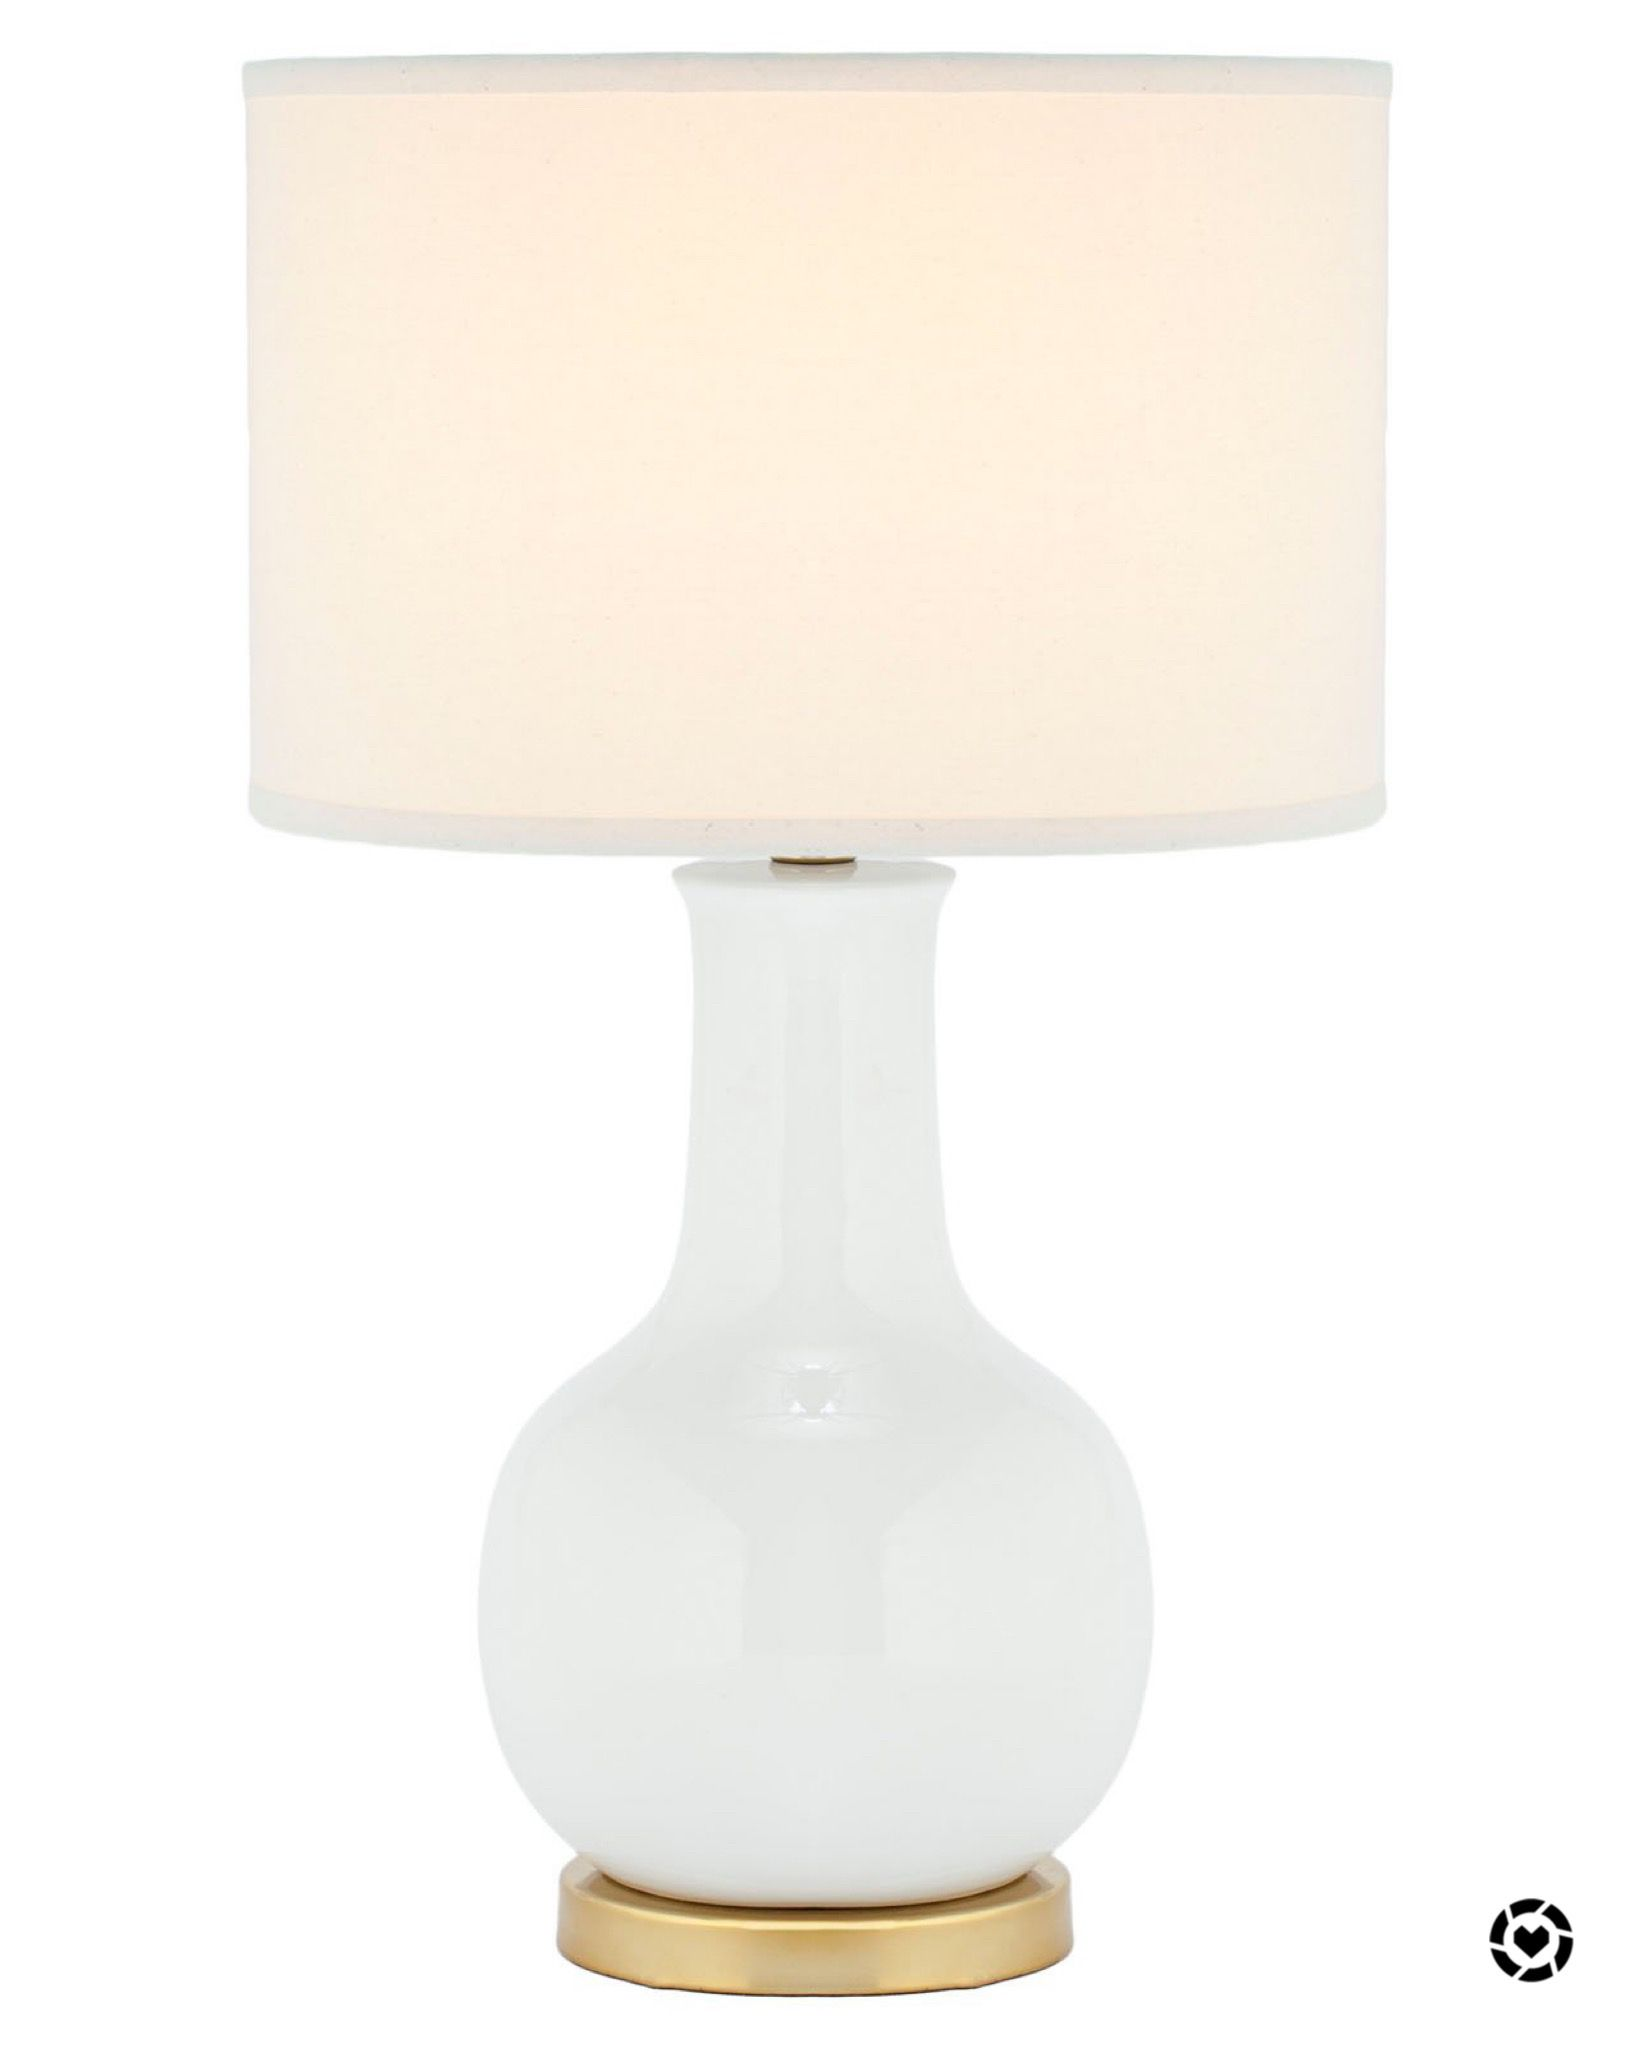 Classic White Lamp With Gold Base Lamp Table Lamp Safavieh Lamps